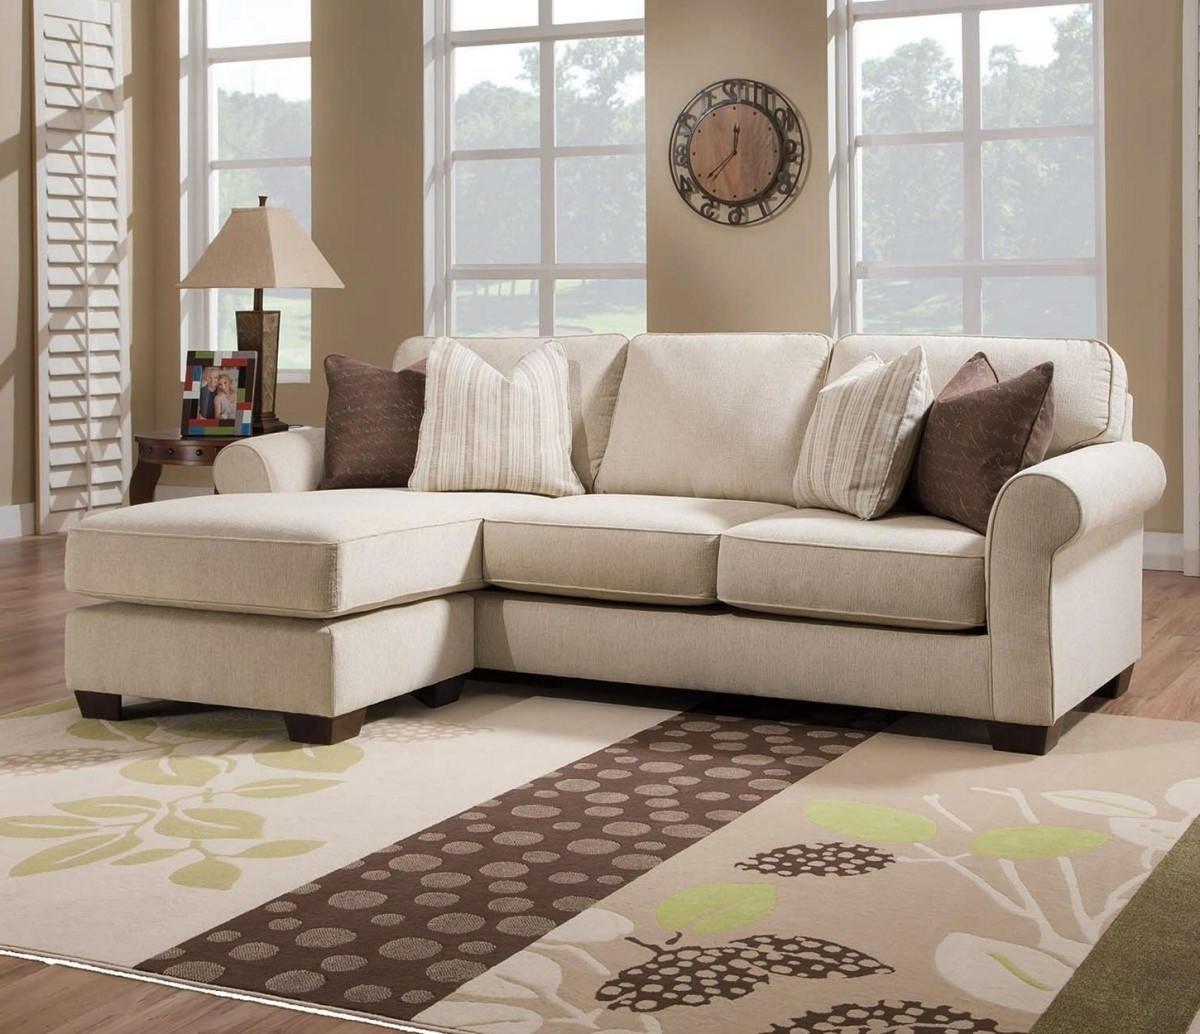 2019 Sectional Sofa Design: Recomended Sectional Sofa For Small Spaces Inside Small Sectional Sofas For Small Spaces (View 1 of 20)